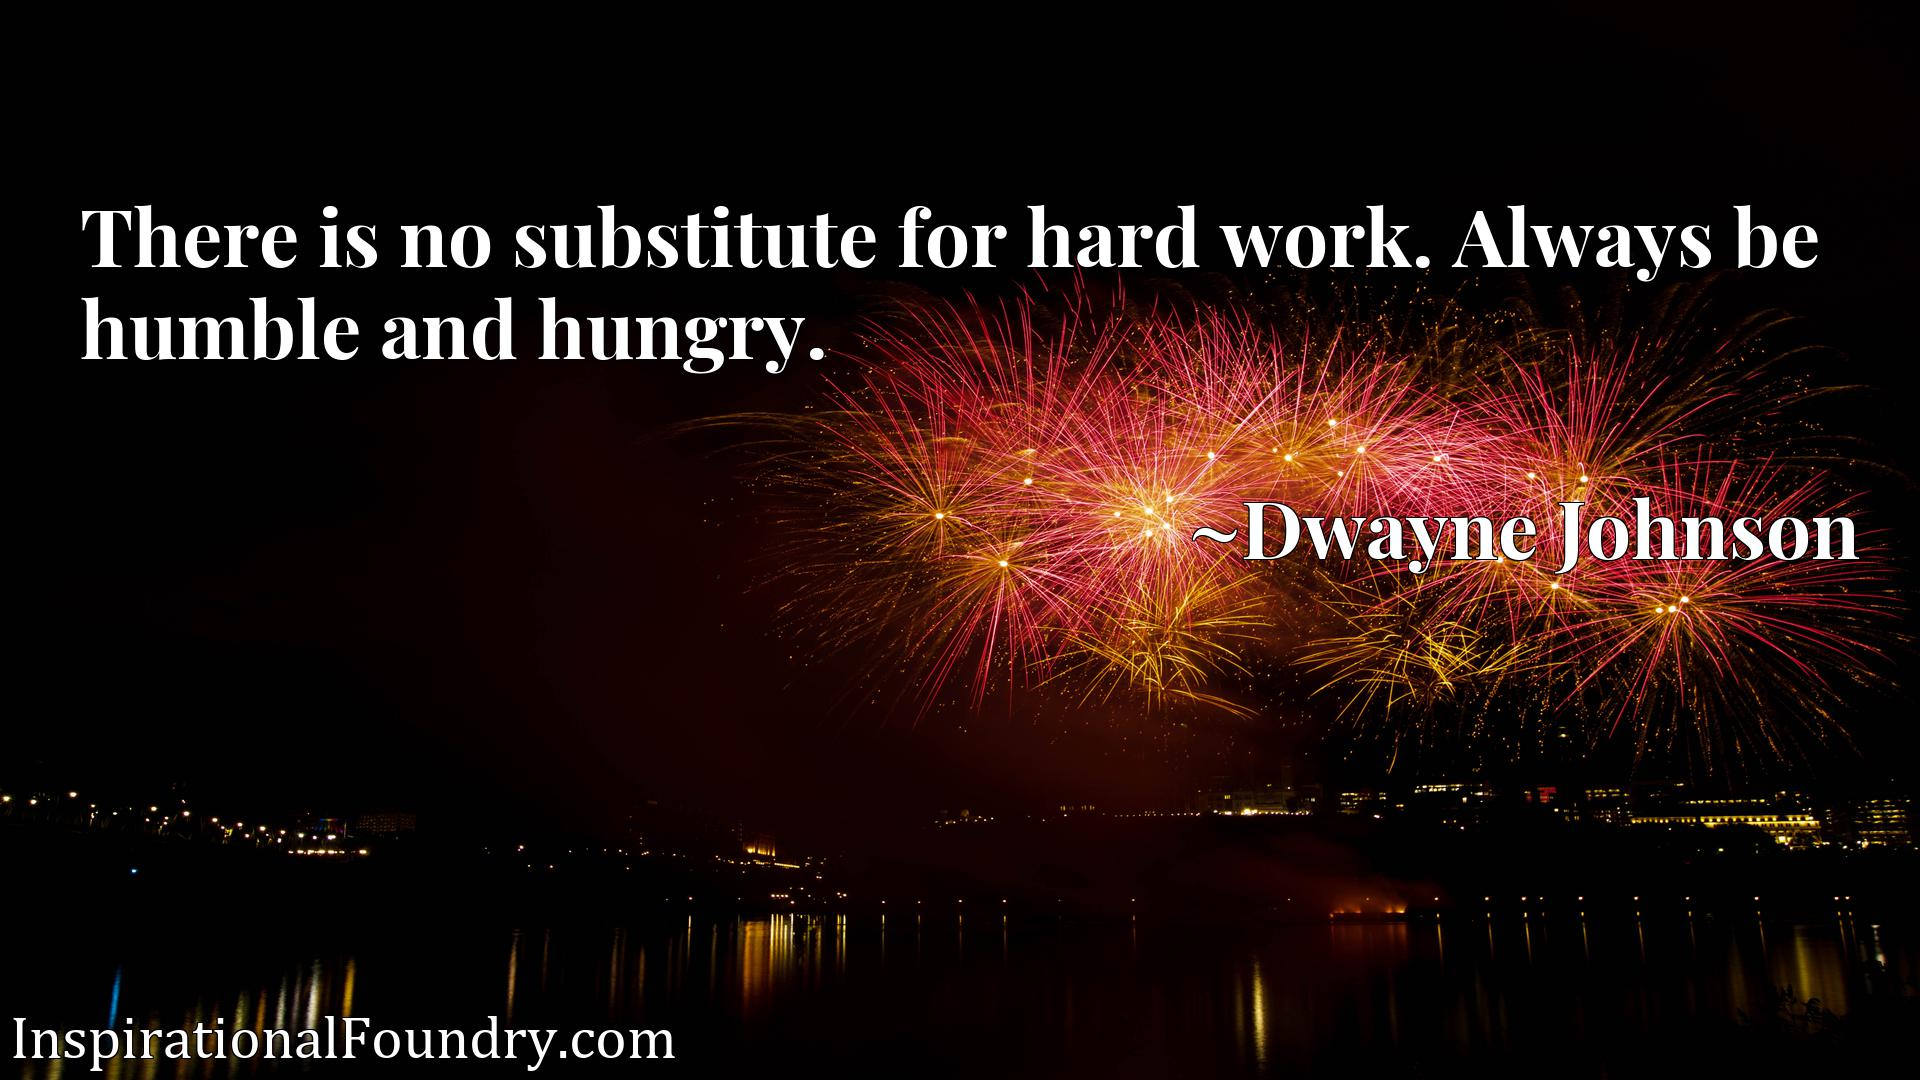 There is no substitute for hard work. Always be humble and hungry.